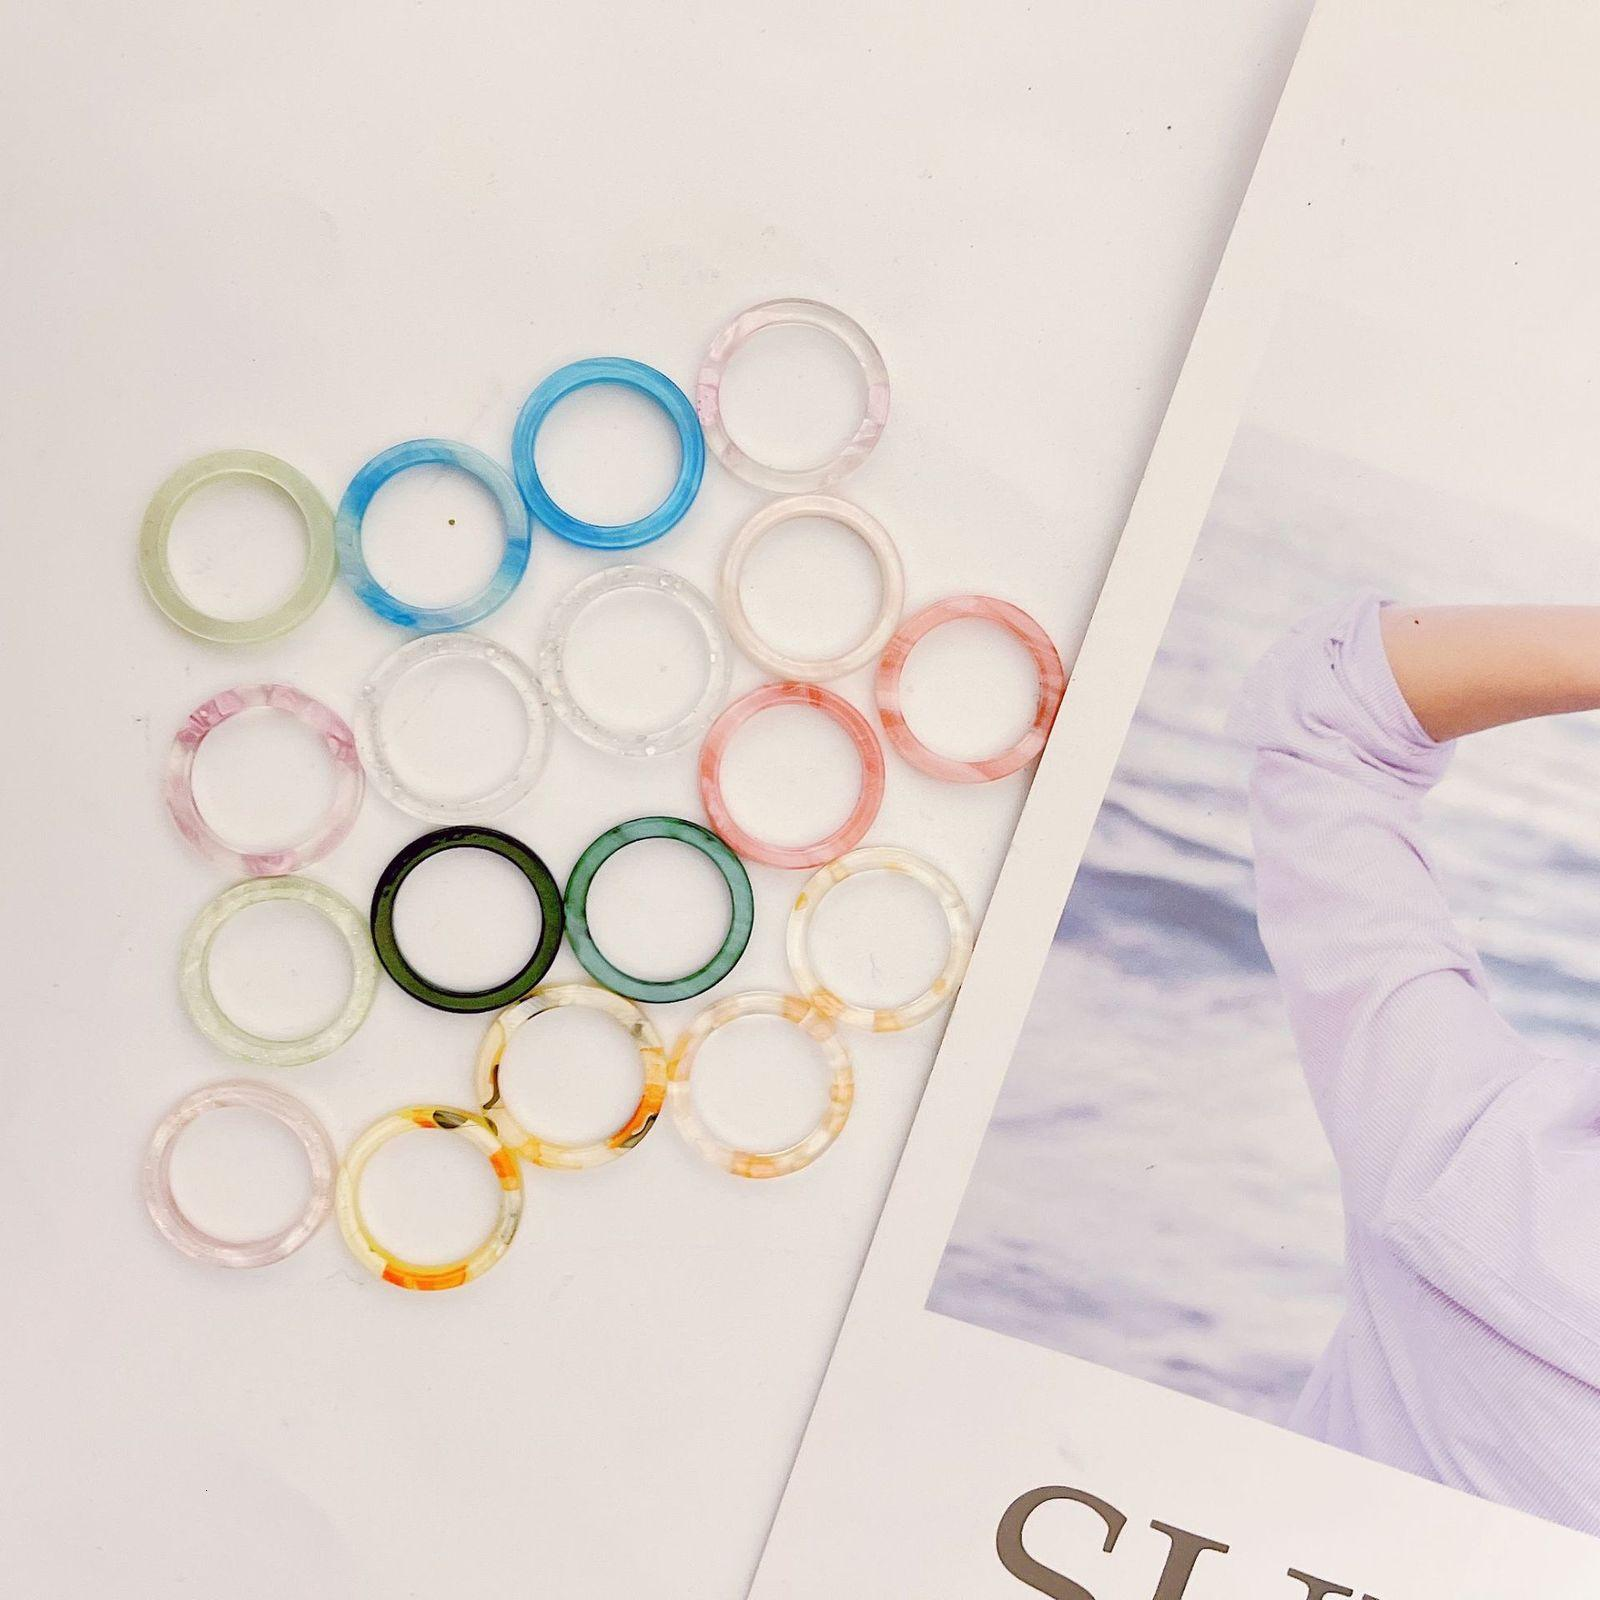 Acrylic Acetate Simple Fashion Does Not Fade Girl Personality Transparent Color Ring